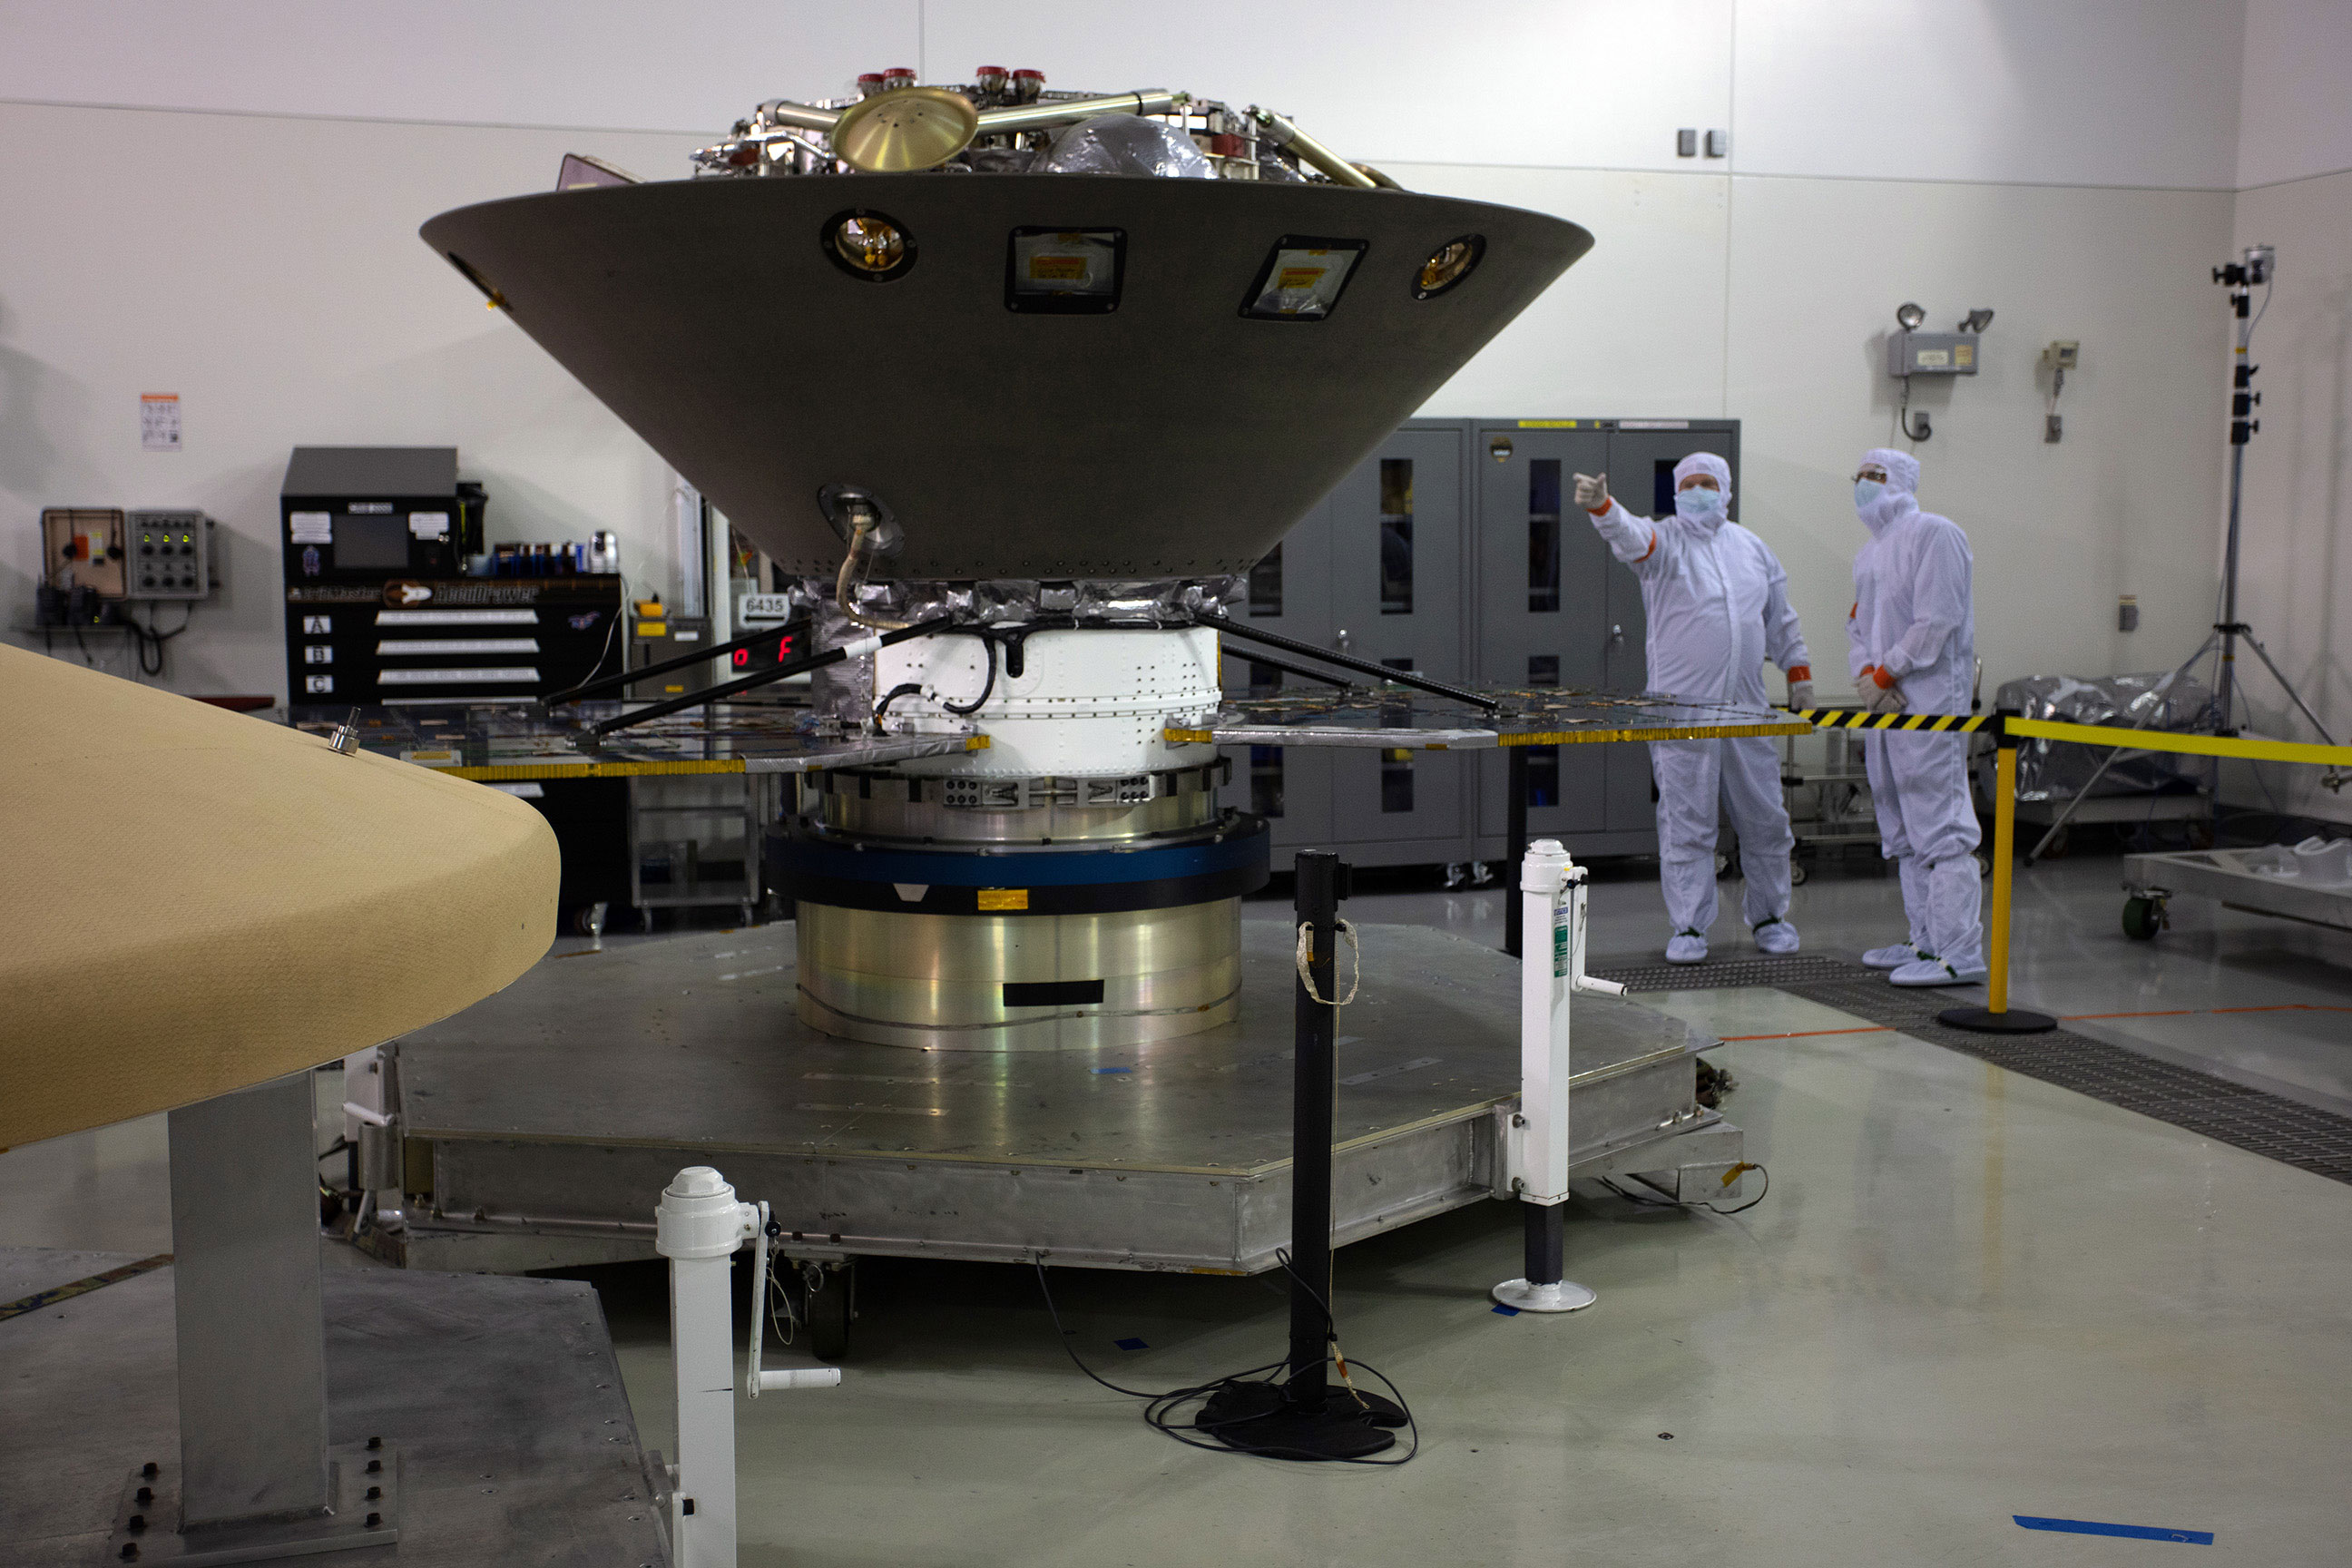 InSight in the Astrotech cleanroom at Vandenberg Air Force Base in final preparations for launch.  Only part of the lander's legs are visible above the aeroshell capsule that will protect it on the 6-month journey to Mars.  Photo: Jon Brack